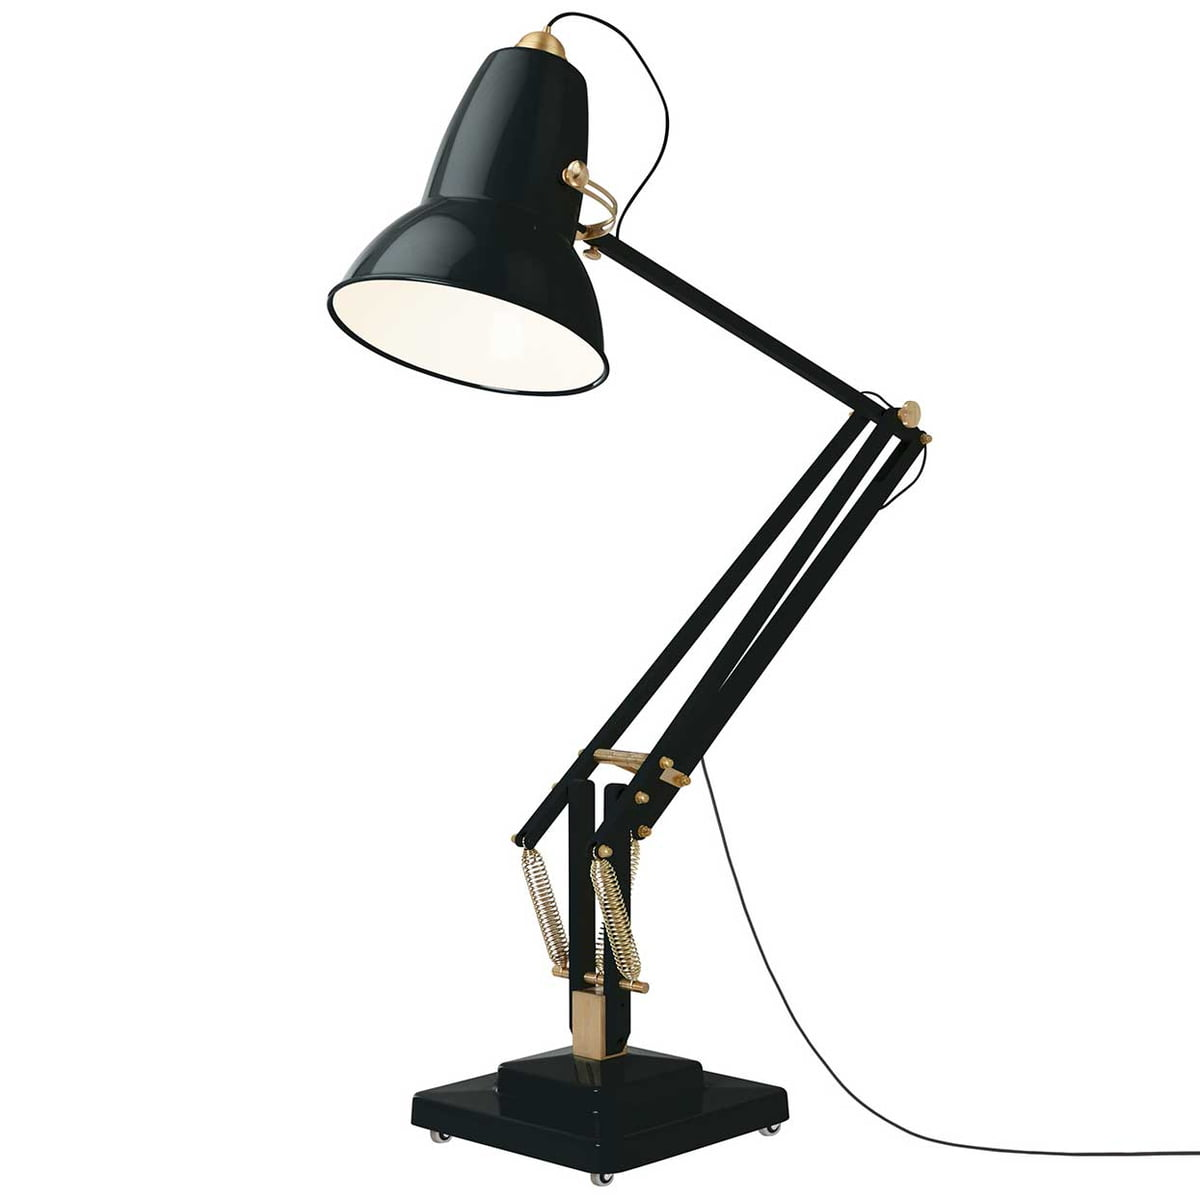 Original 1227 Giant Brass Floor Lamp By Anglepoise